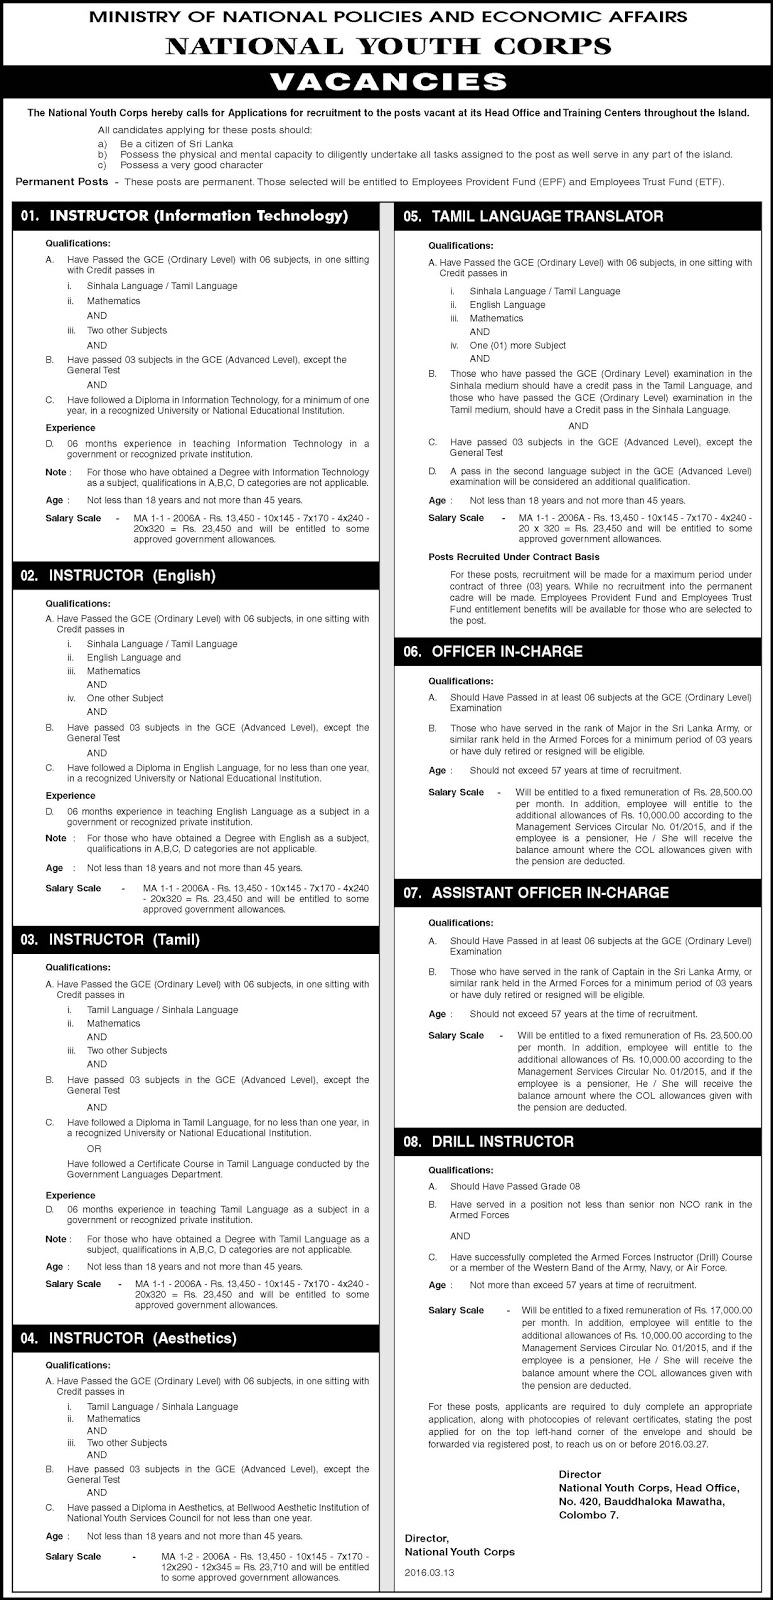 Vacancies – Instructor (Information Technology) – Instructor (English) – Instructor (Tamil) – Instructor (Aesthetics) – Tamil Language Translator – Office In (Charge) – Assistant Officer In -(Charge) – Drill Instructor - National Youth Corps - Ministry of National Policies and Economic Affairs